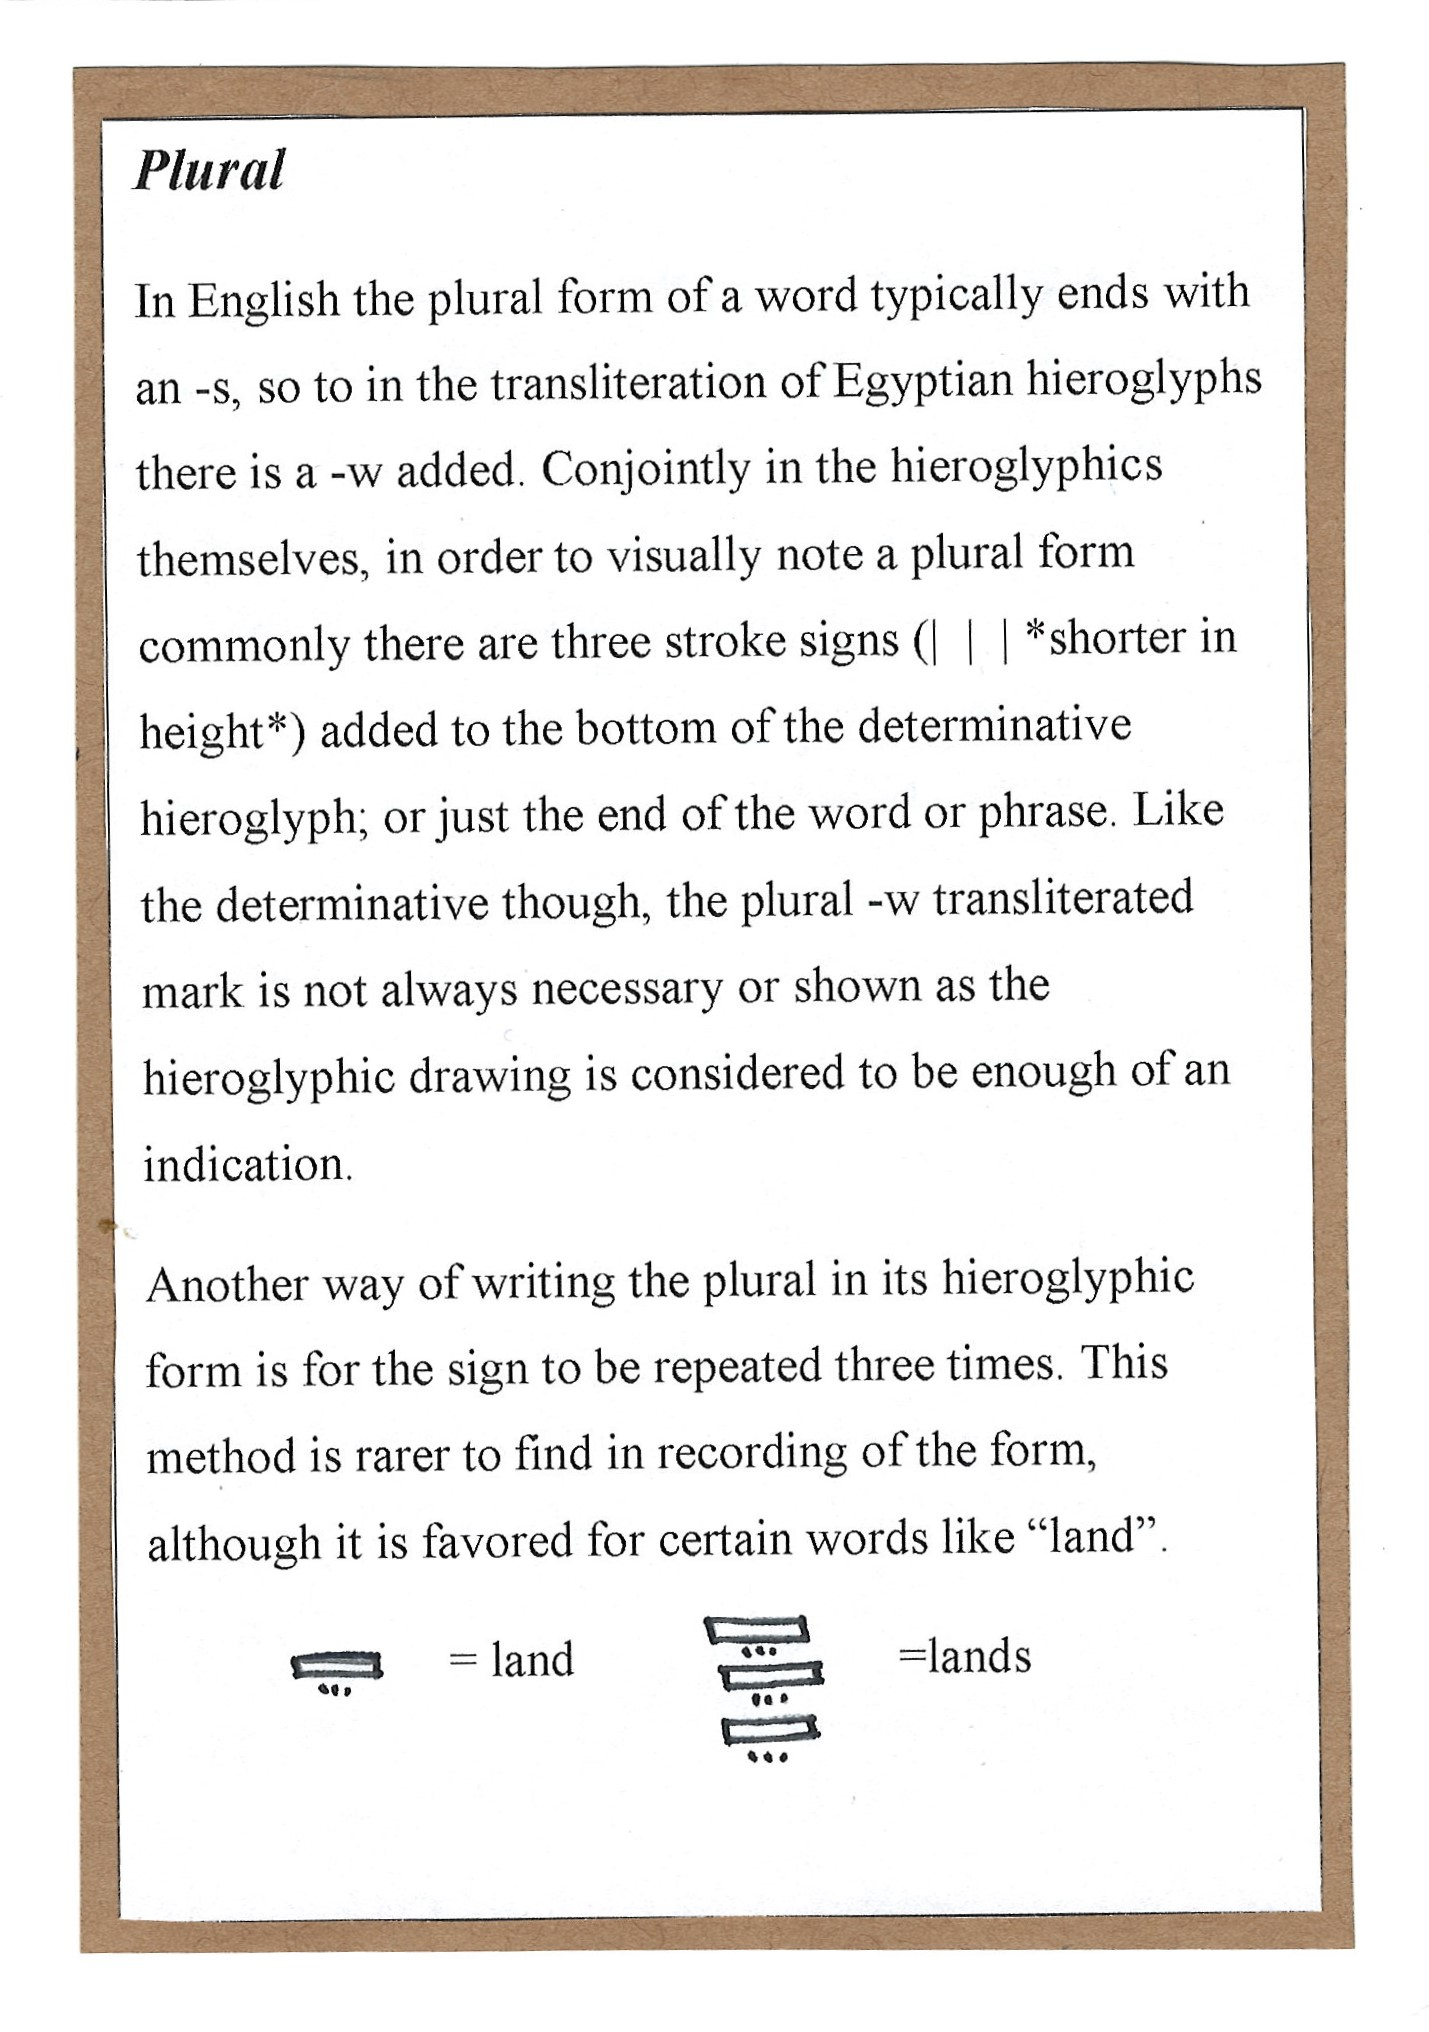 Page 12. Plural, and the different ways to accomplish the form in Egyptian hieroglyphs as opposed to the English language.